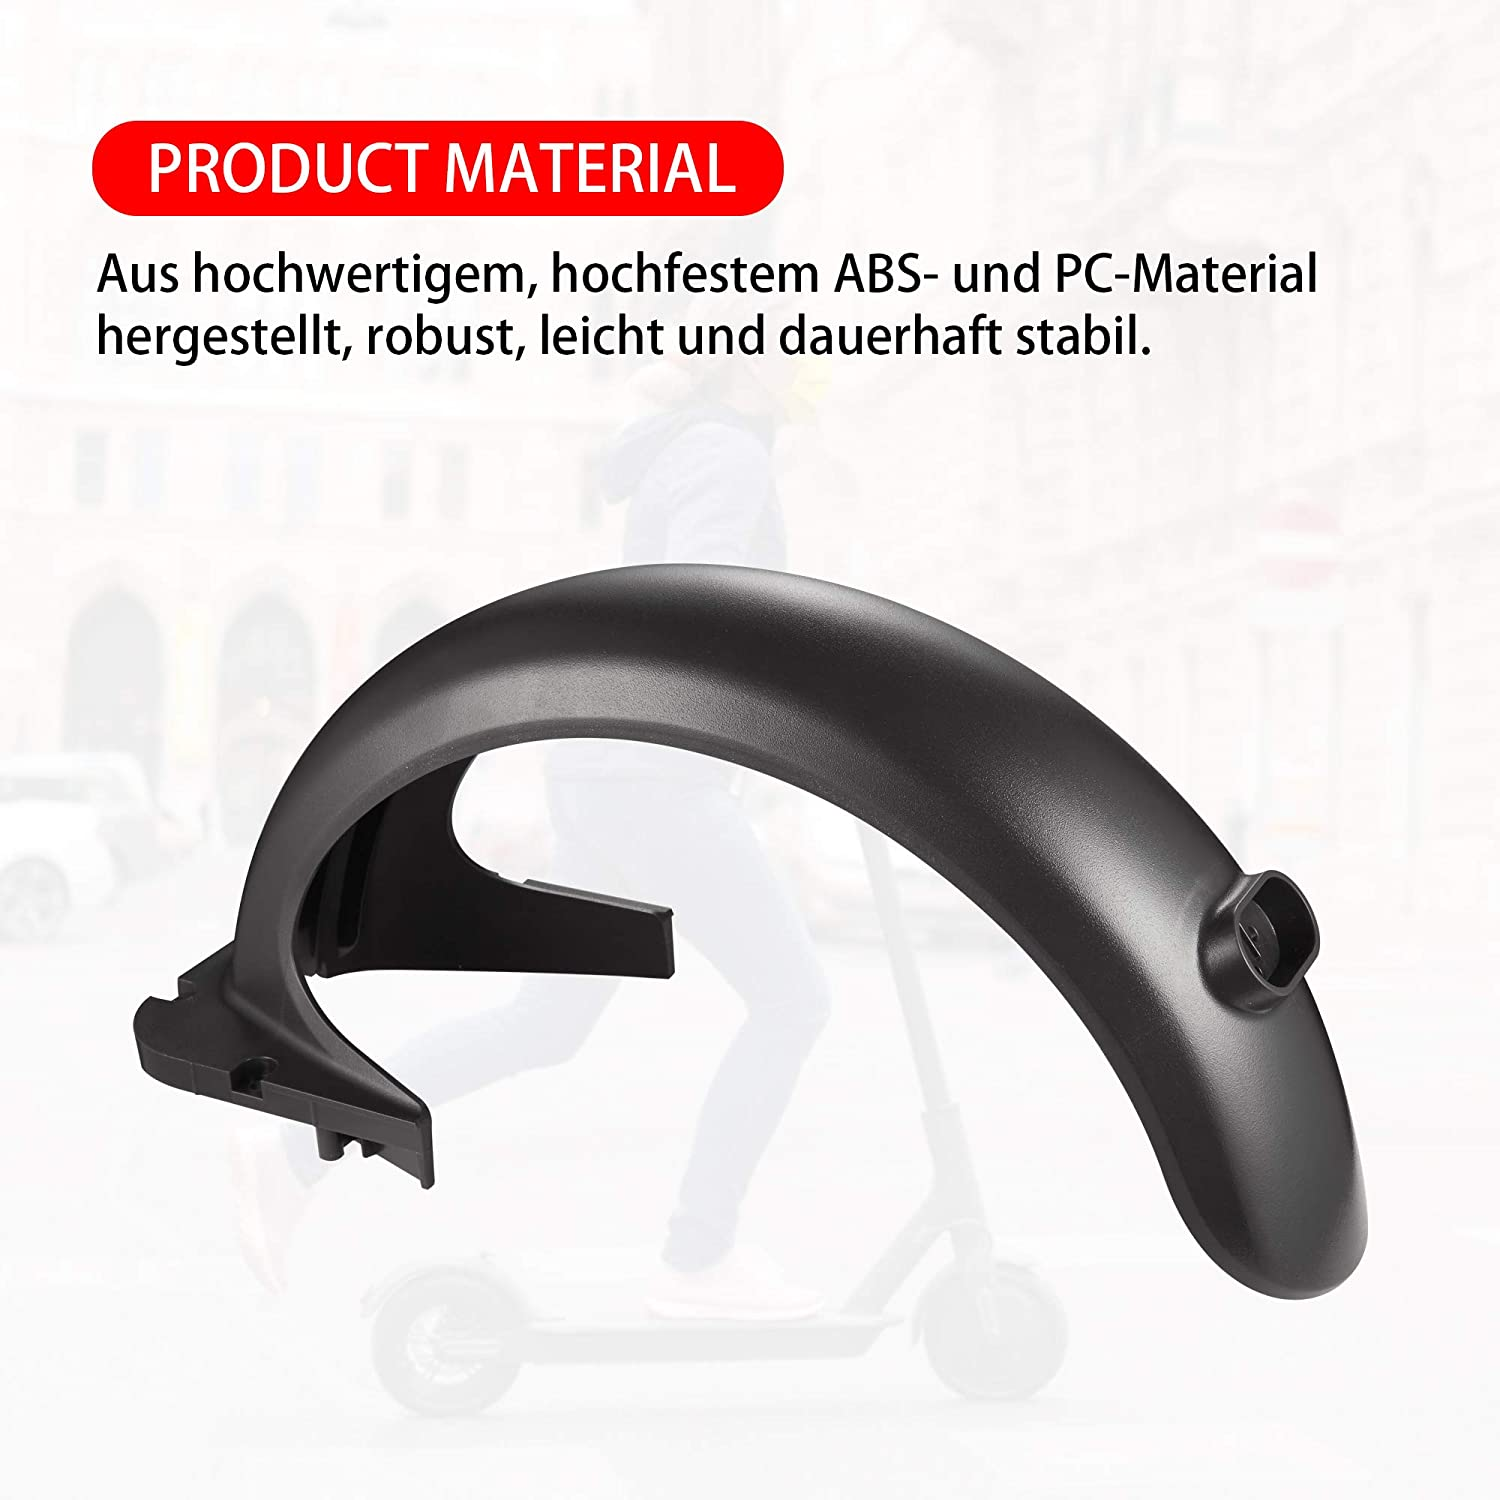 TOMALL Scooter Fender Rear Mudguard Fender Bracket Compatible with Ninebot Max Scooter Replace Parts Accessories for Max G30 Electric Scooter